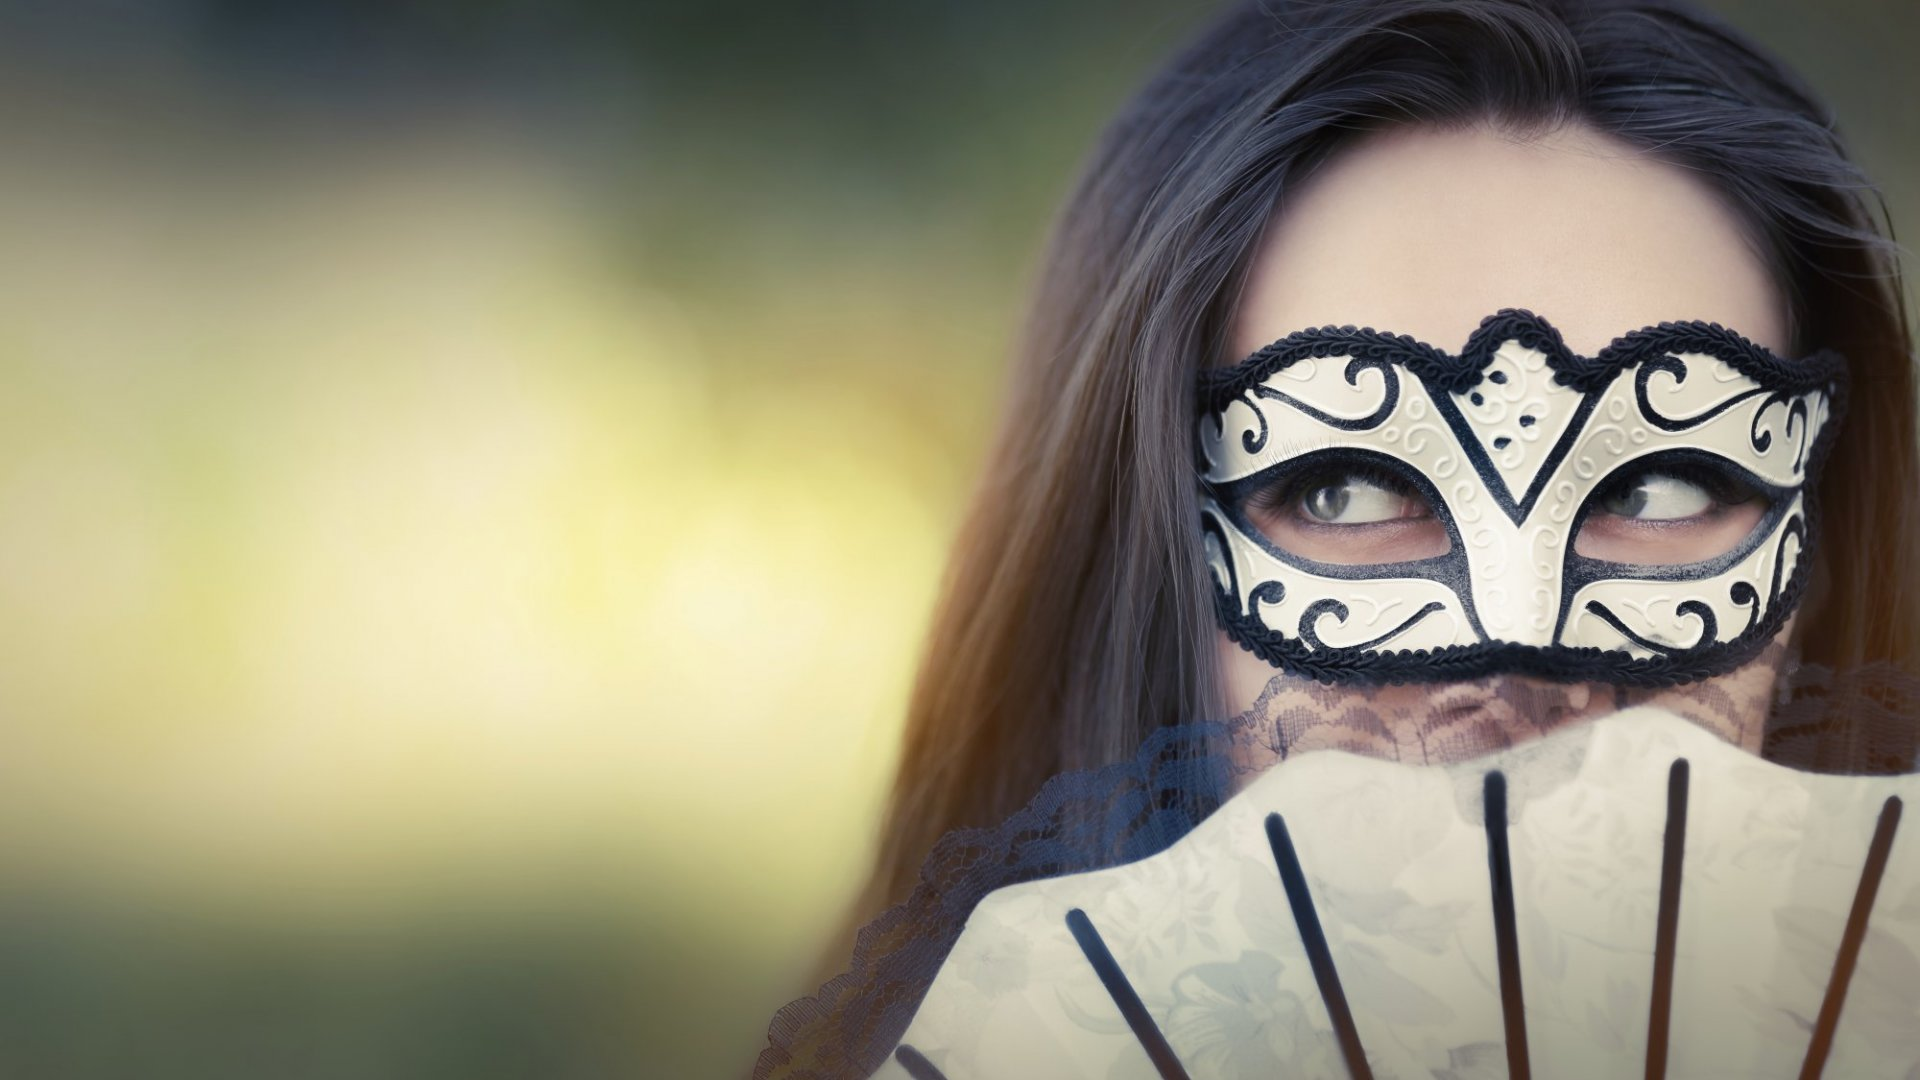 Do You Have Days When You Feel Like an Absolute Imposter?